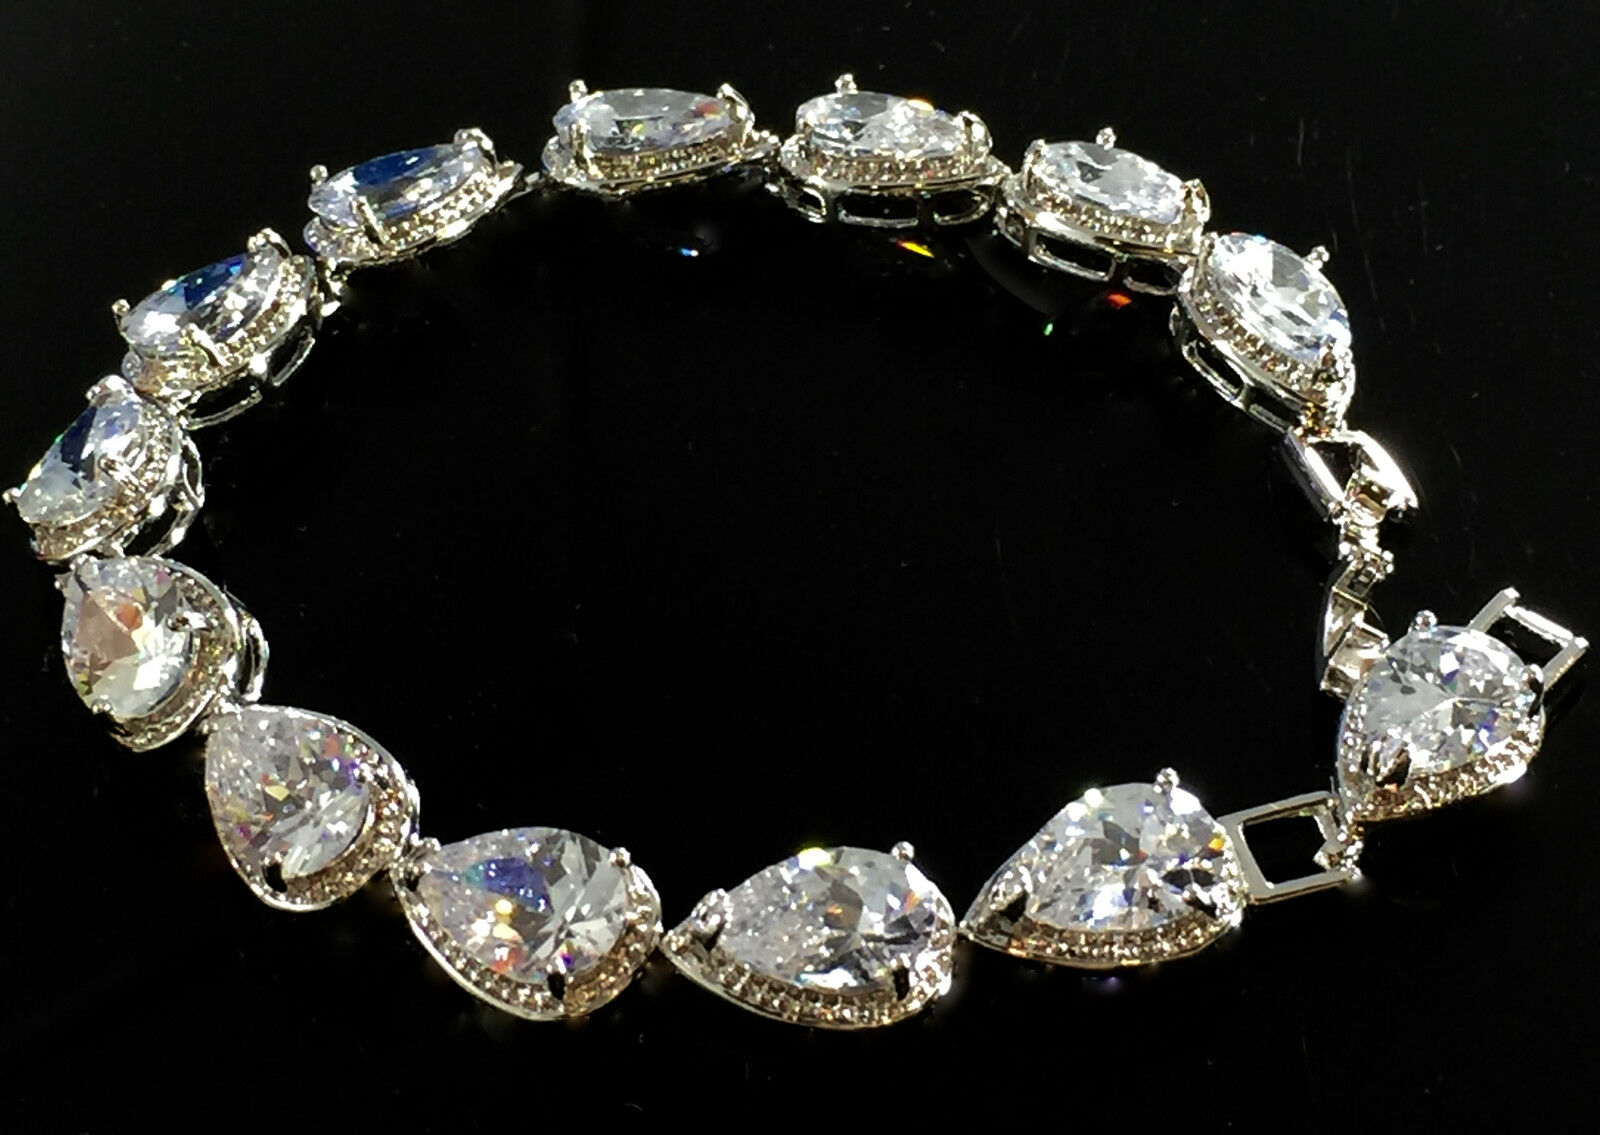 14k White Gold Tennis Bracelet Made W Swarovski Crystal